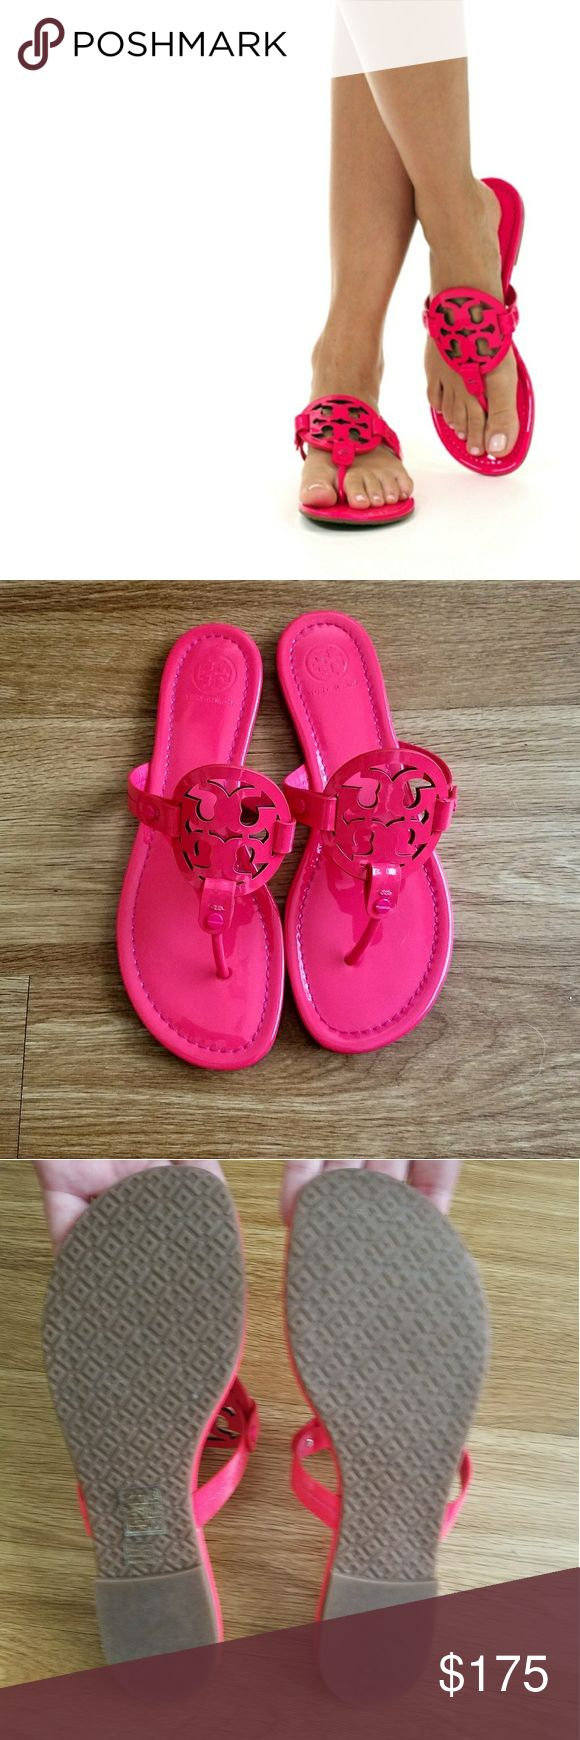 Tory Burch Miller Sandal Fluo Fuchsia NWOT!! Only worn to try on. Simply breathtaking!! All reasonable offers welcome!! Tory Burch Shoes Sandals